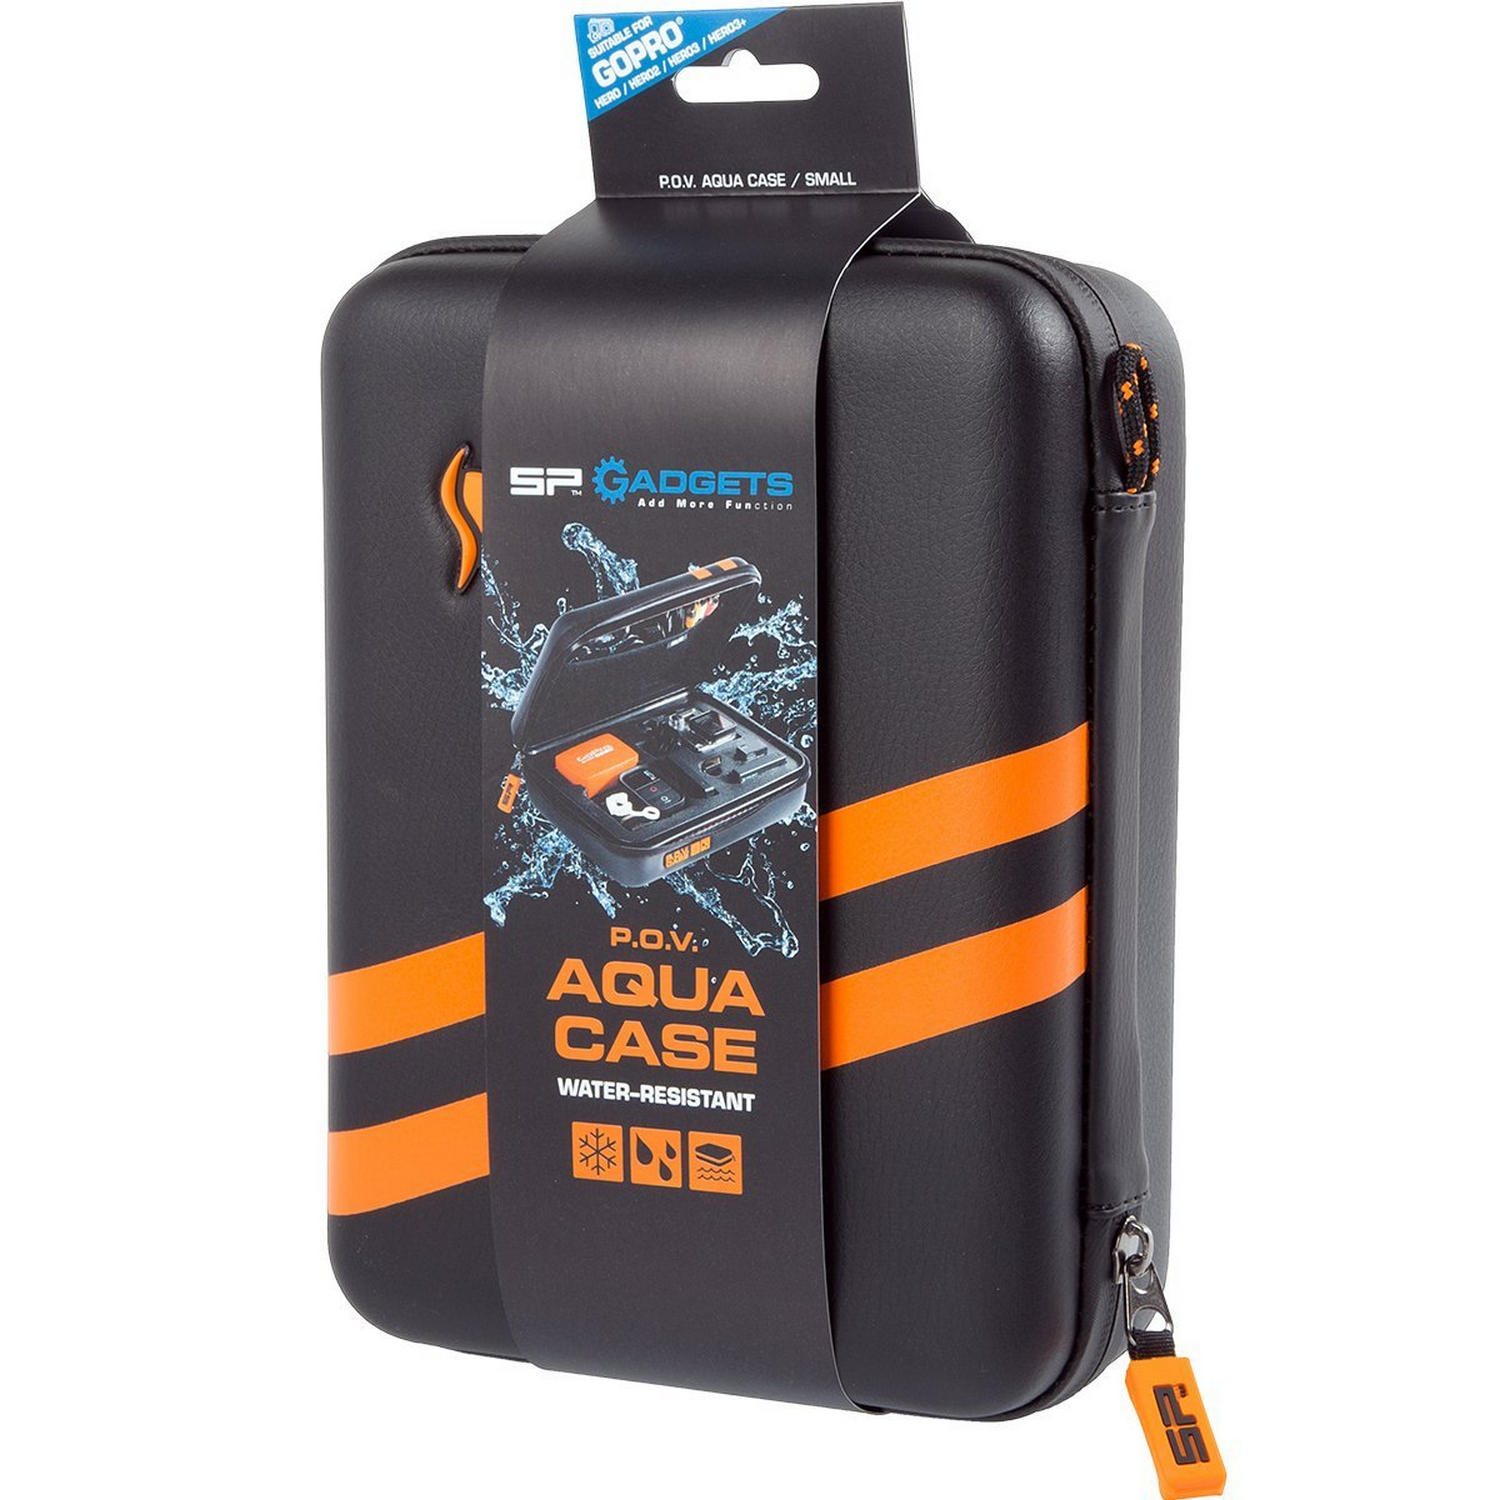 SP POV Aqua Case GoPro Edition 3.0 black SP-GADGETS 53080